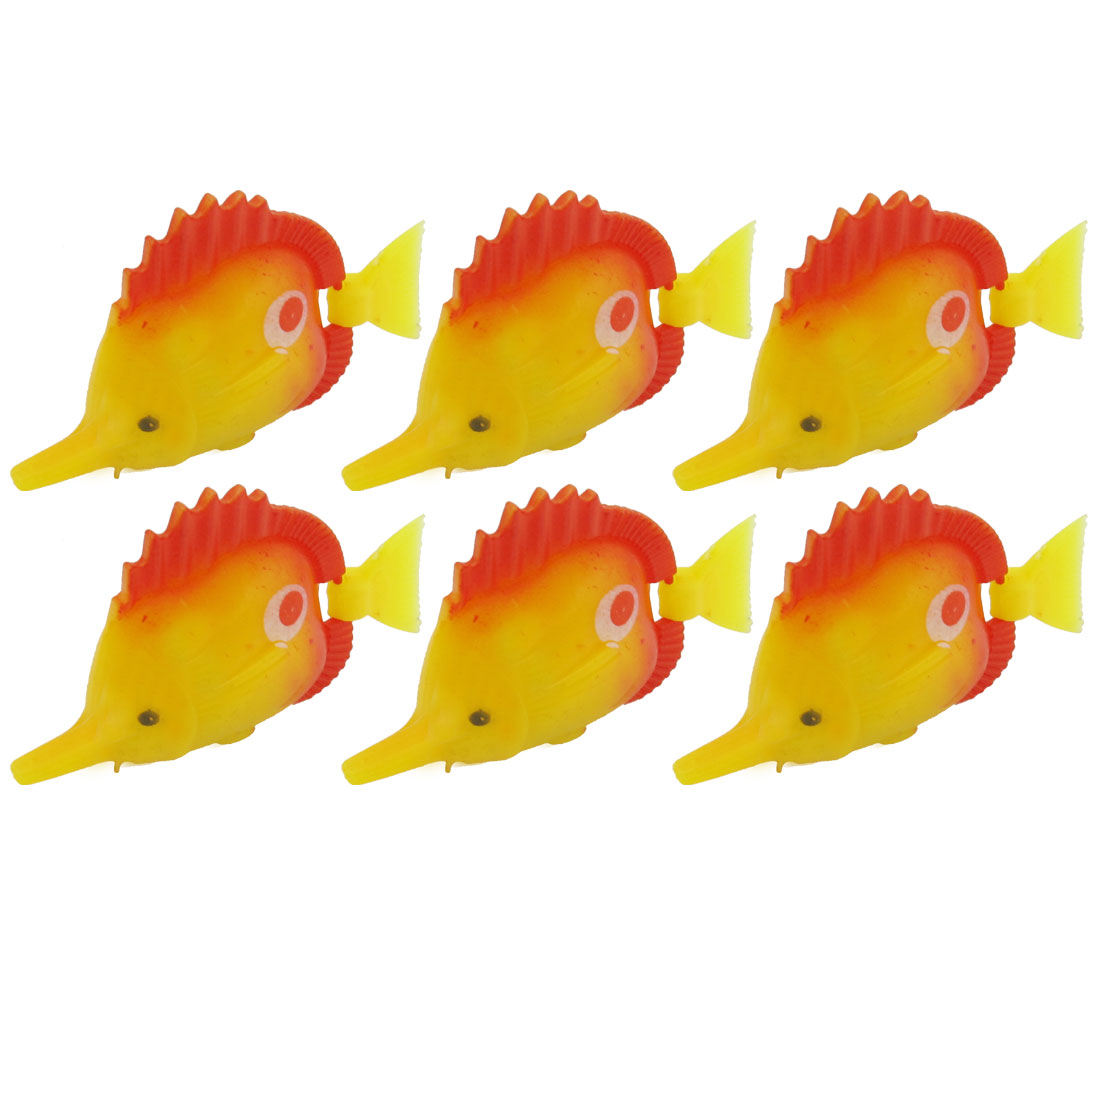 Aquarium Flexible Swing Tail Red Yellow Plastic Fish 6 Pcs